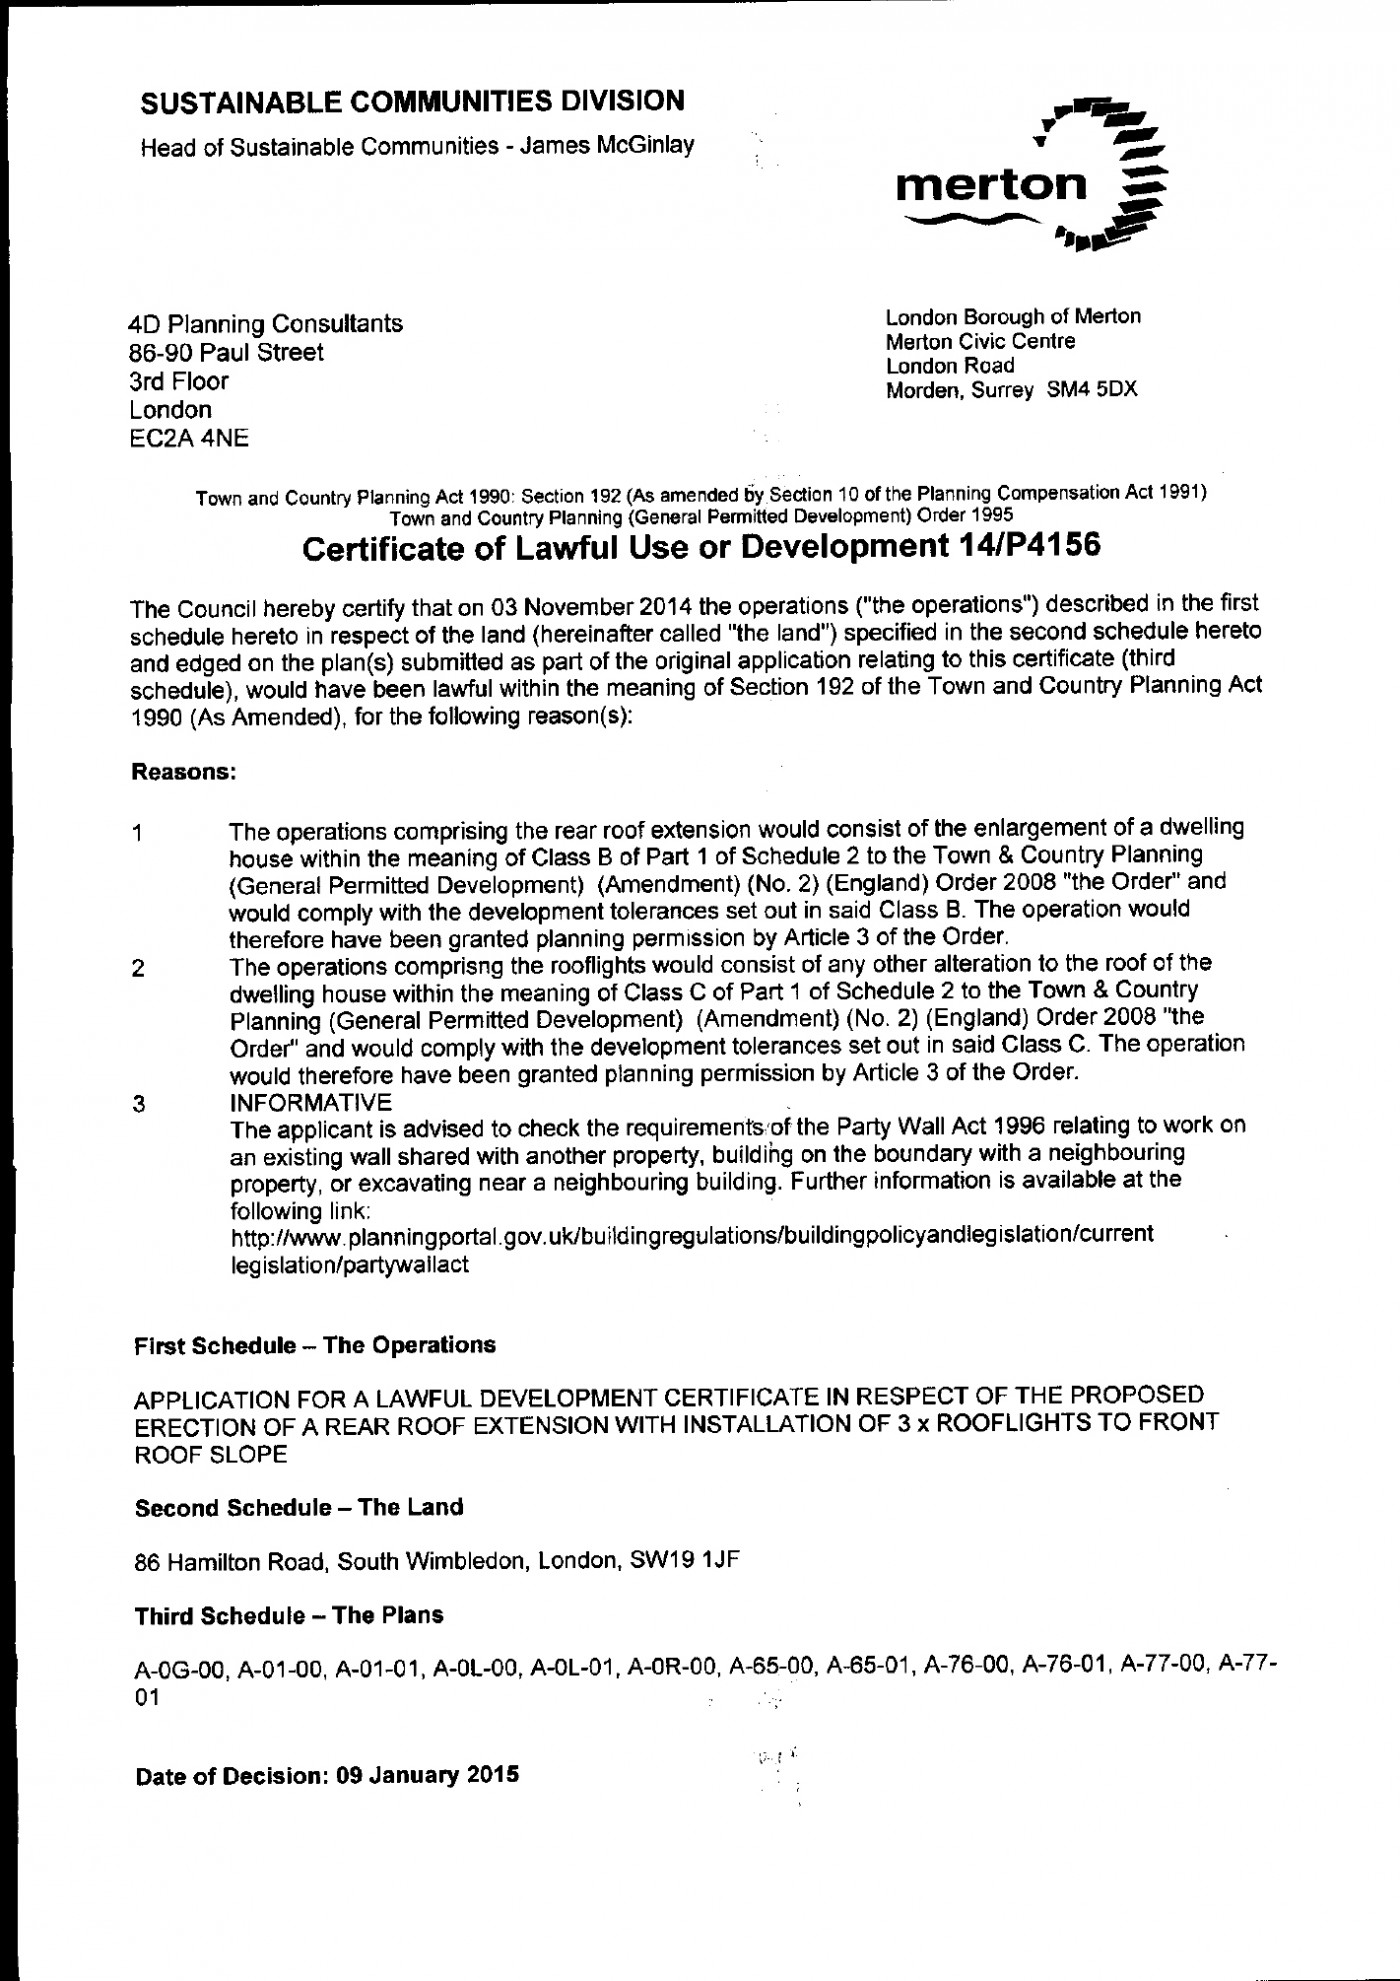 Merton Council Decision Notice - Planning Permission Granted